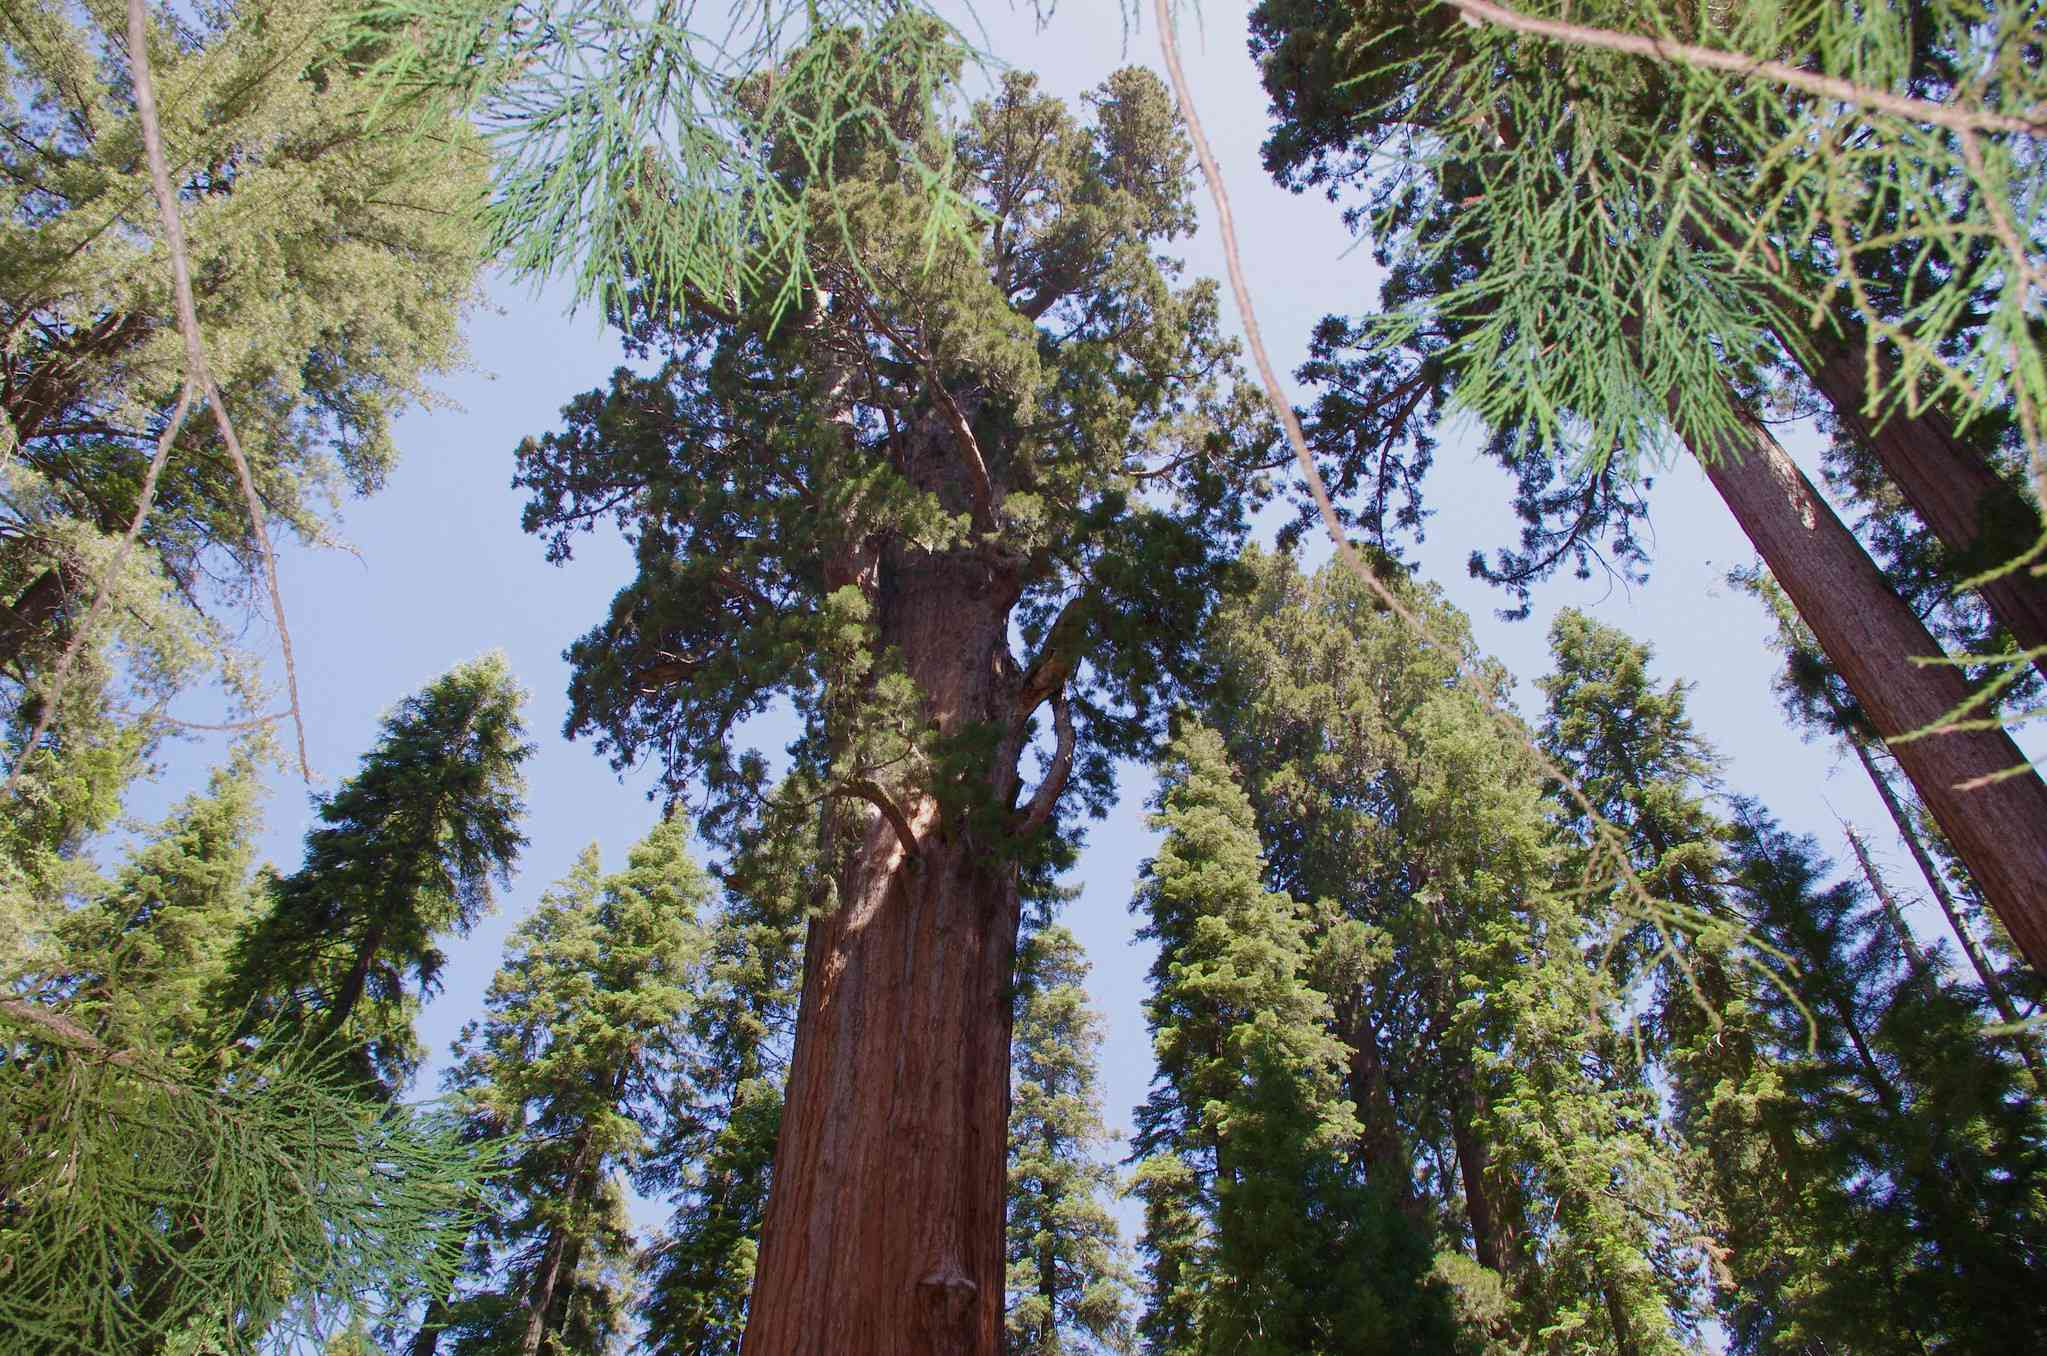 Looking up at the General Sherman tree among other trees